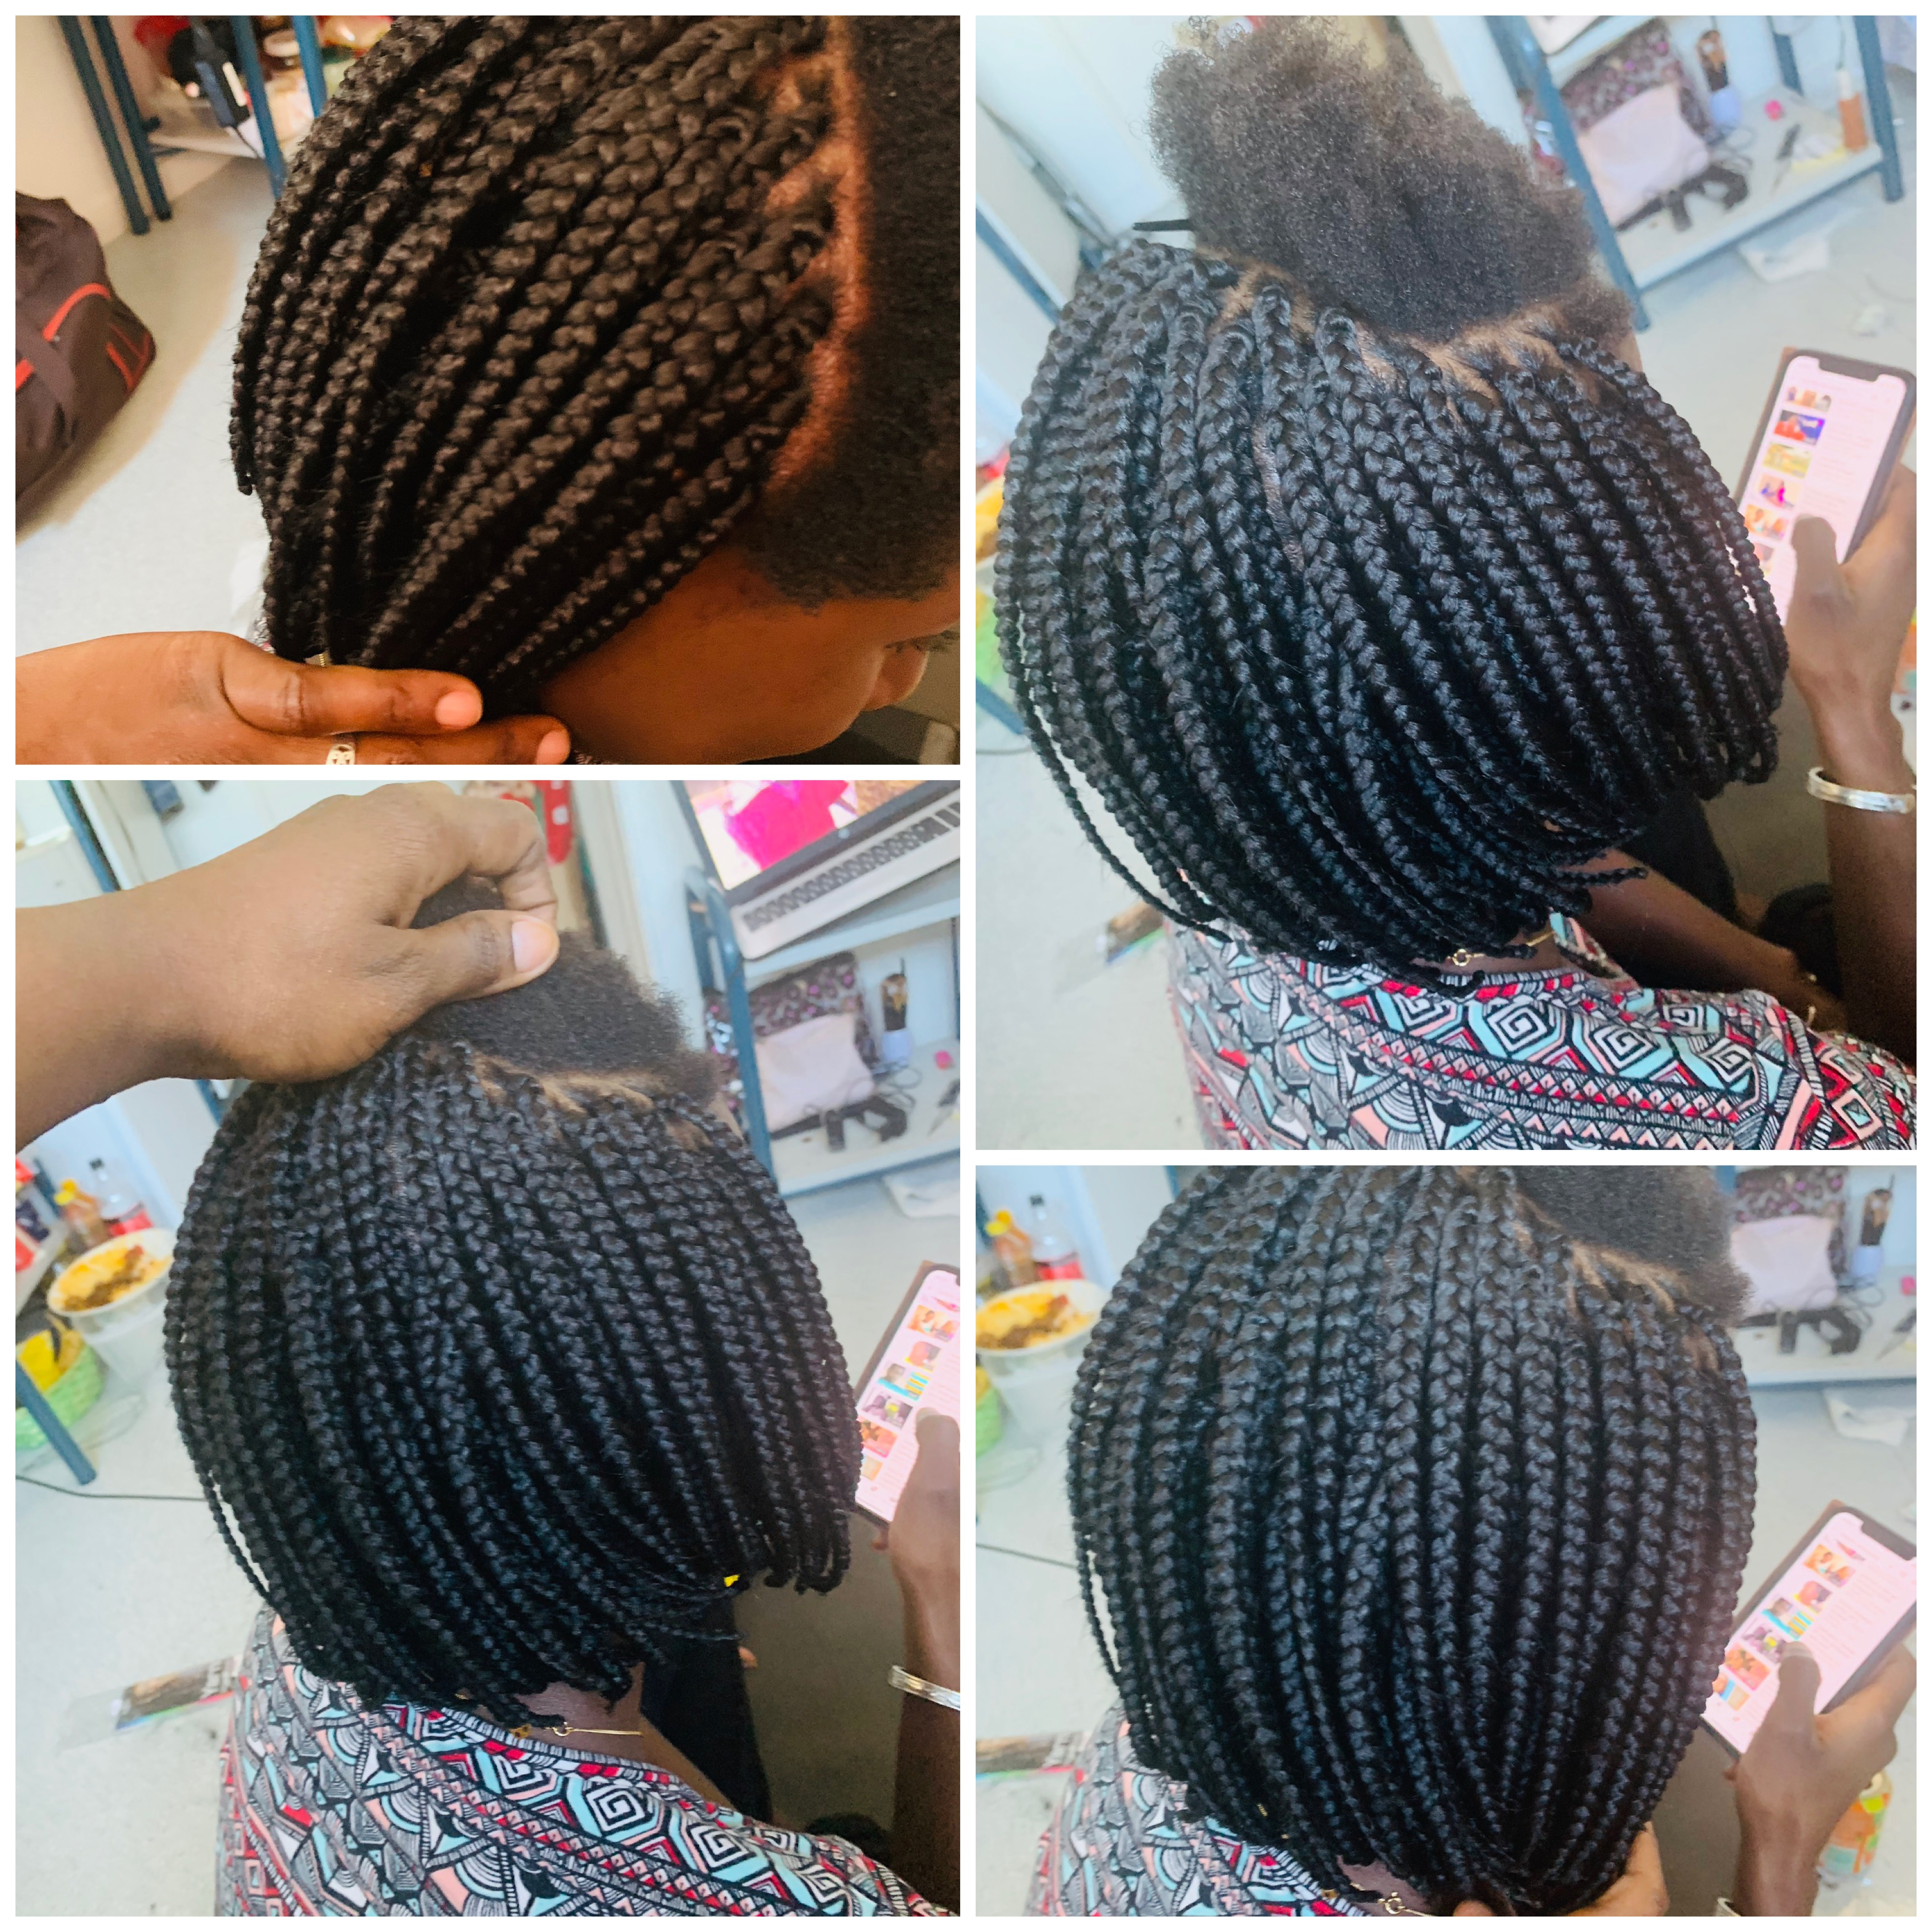 salon de coiffure afro tresse tresses box braids crochet braids vanilles tissages paris 75 77 78 91 92 93 94 95 NDWUFDVM